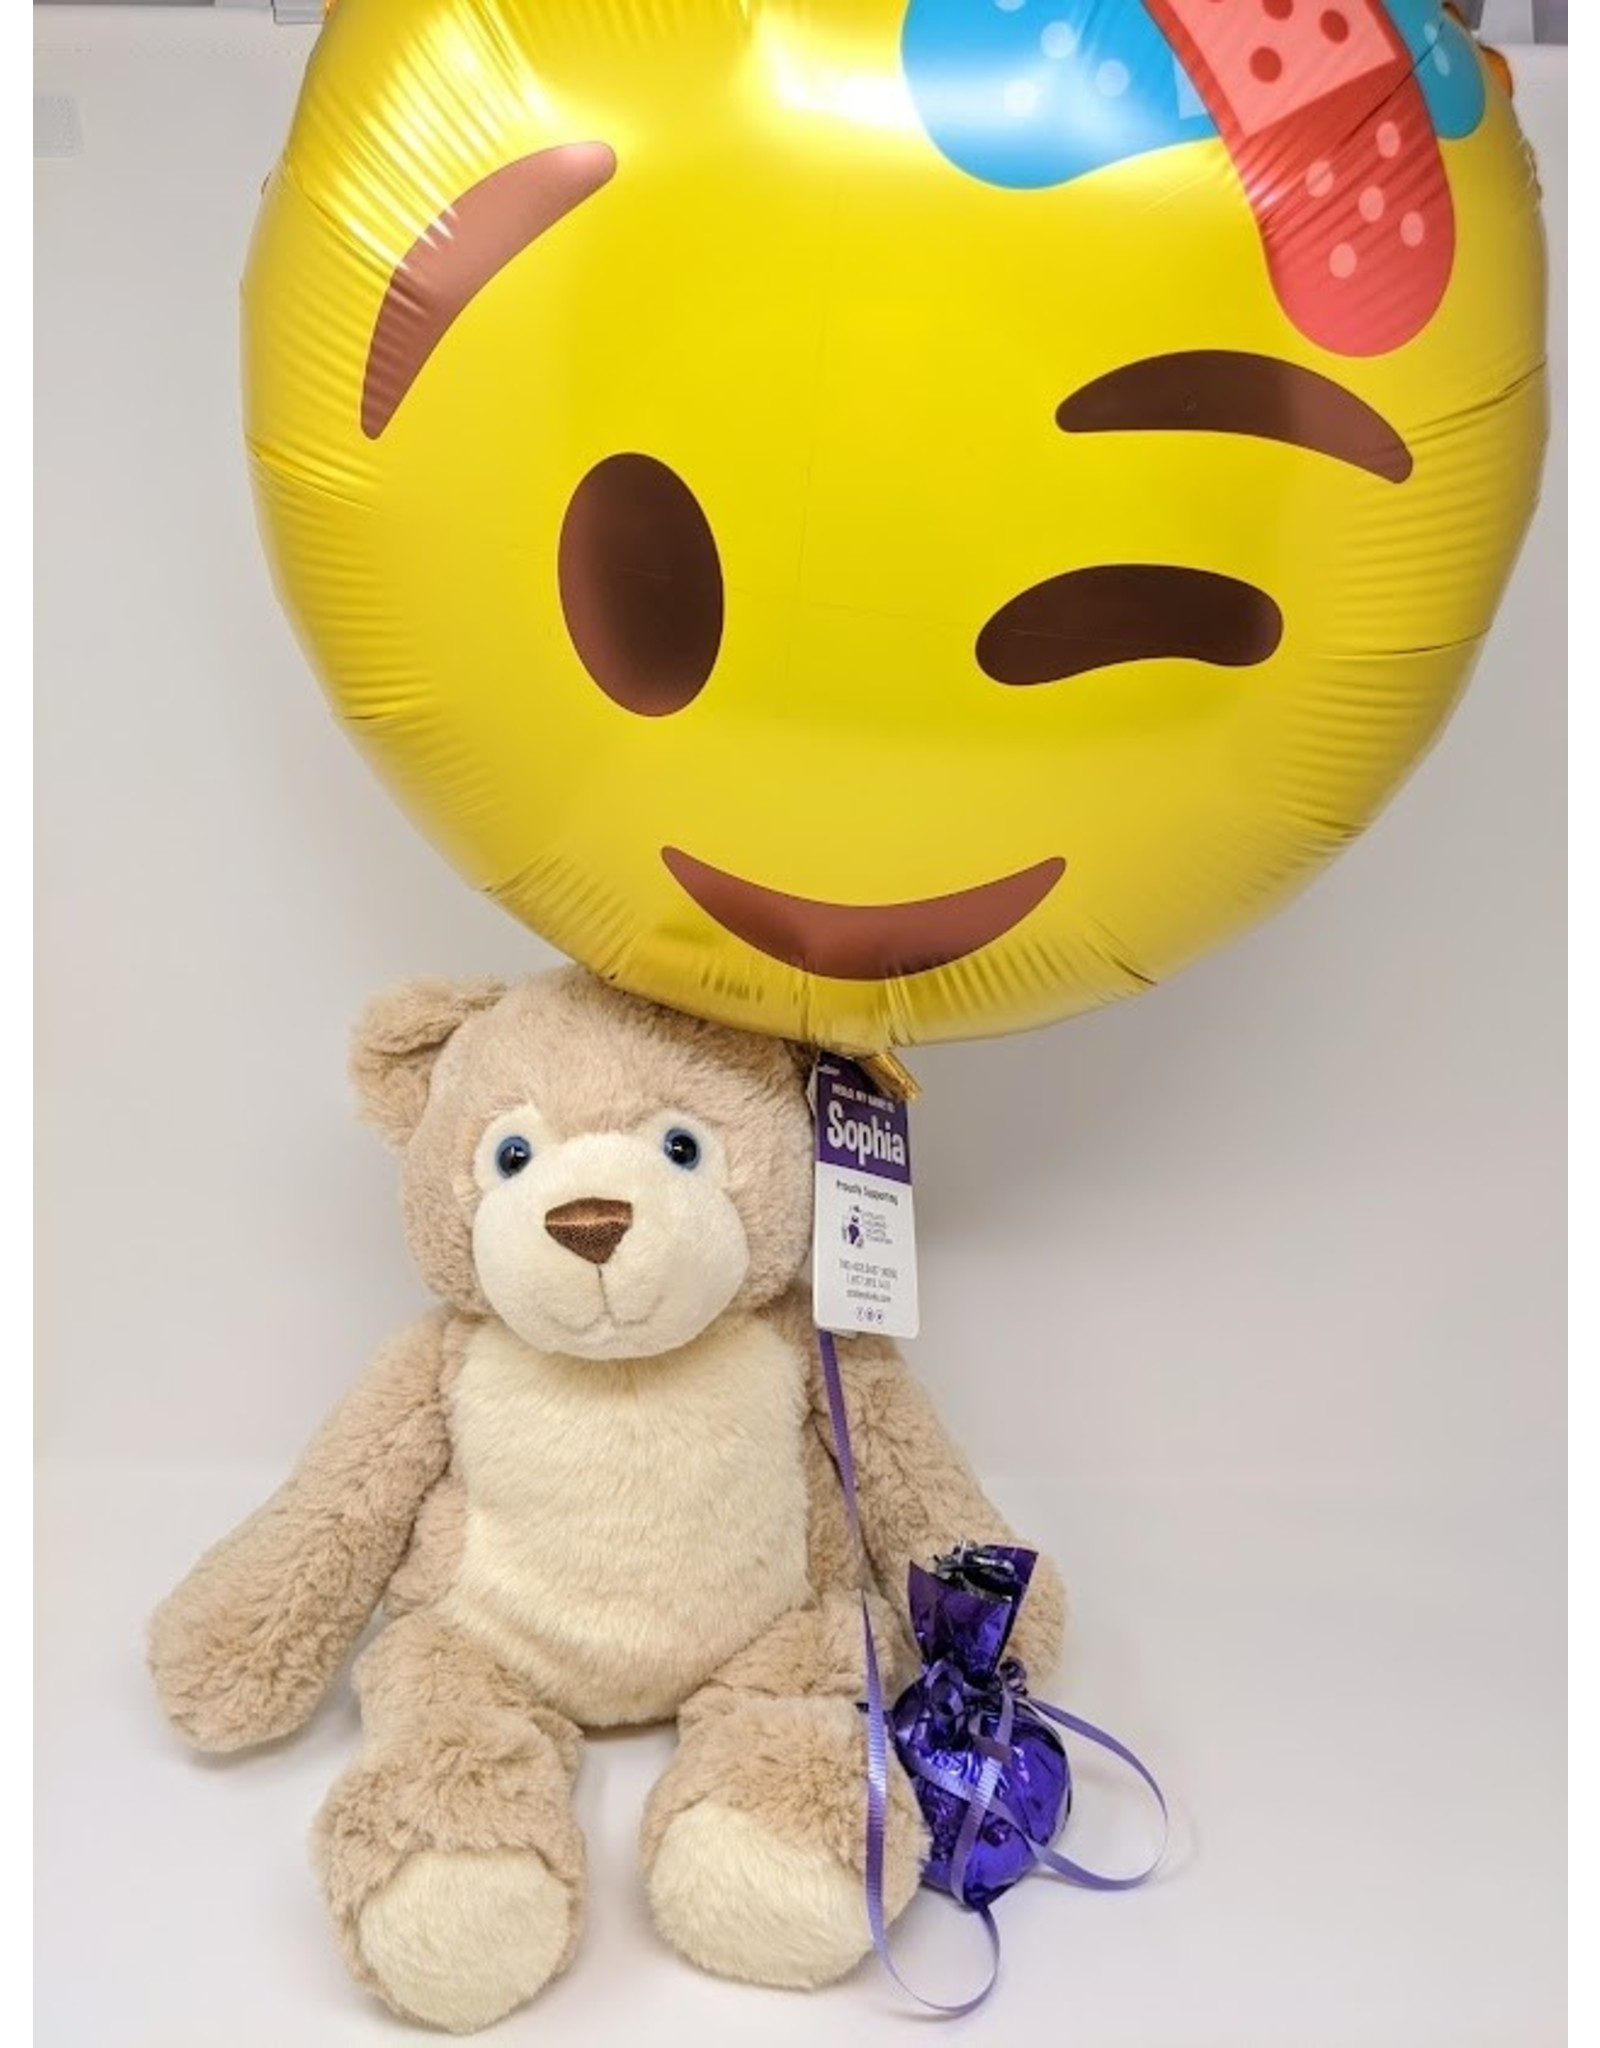 Sophia Bear & Balloon - large